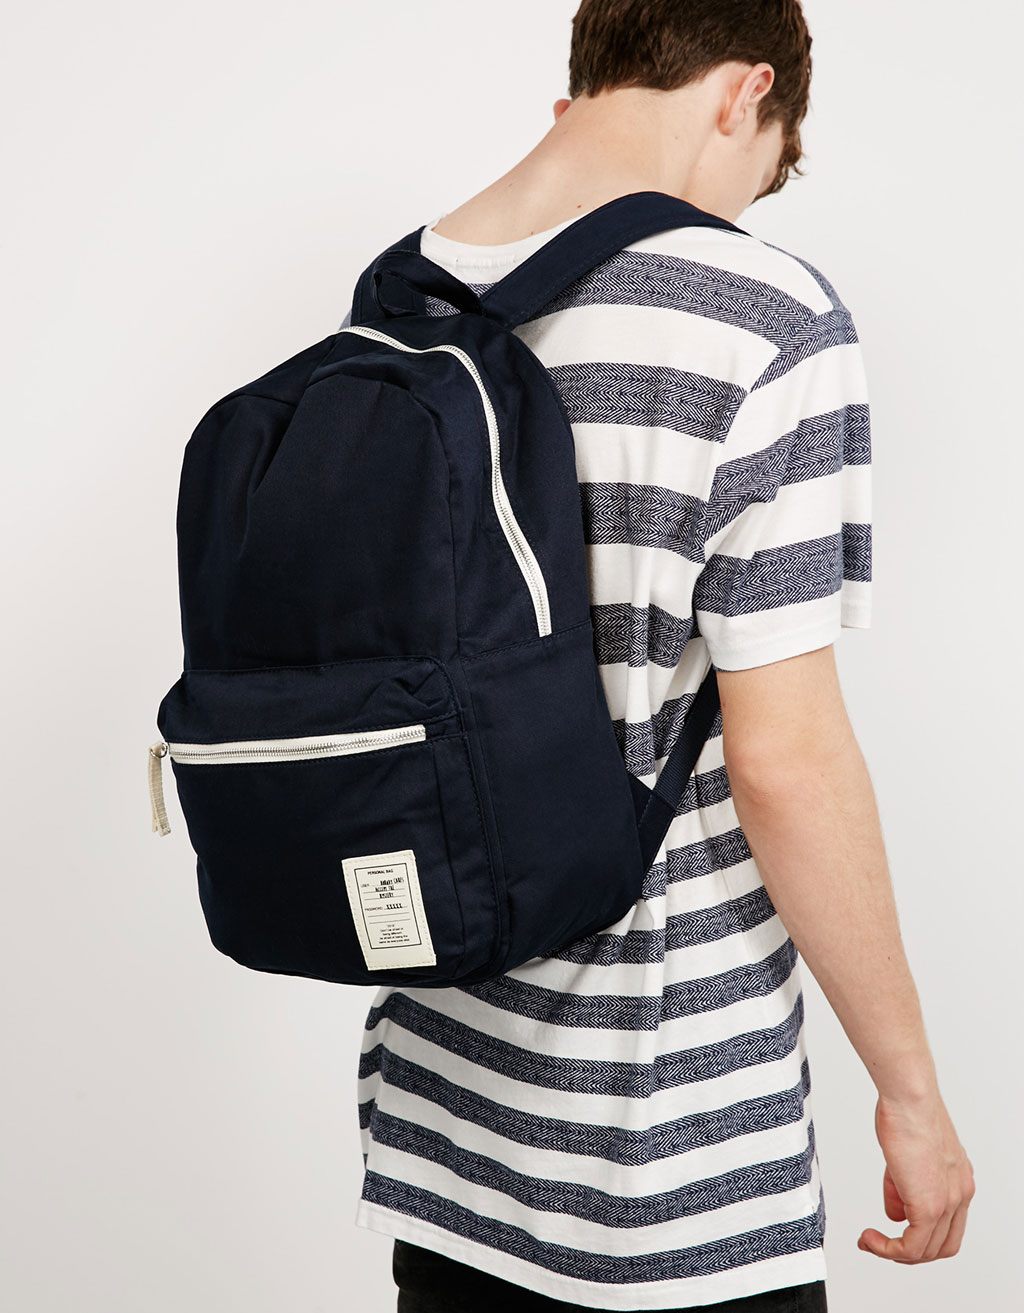 'Metallic Zippers' backpack